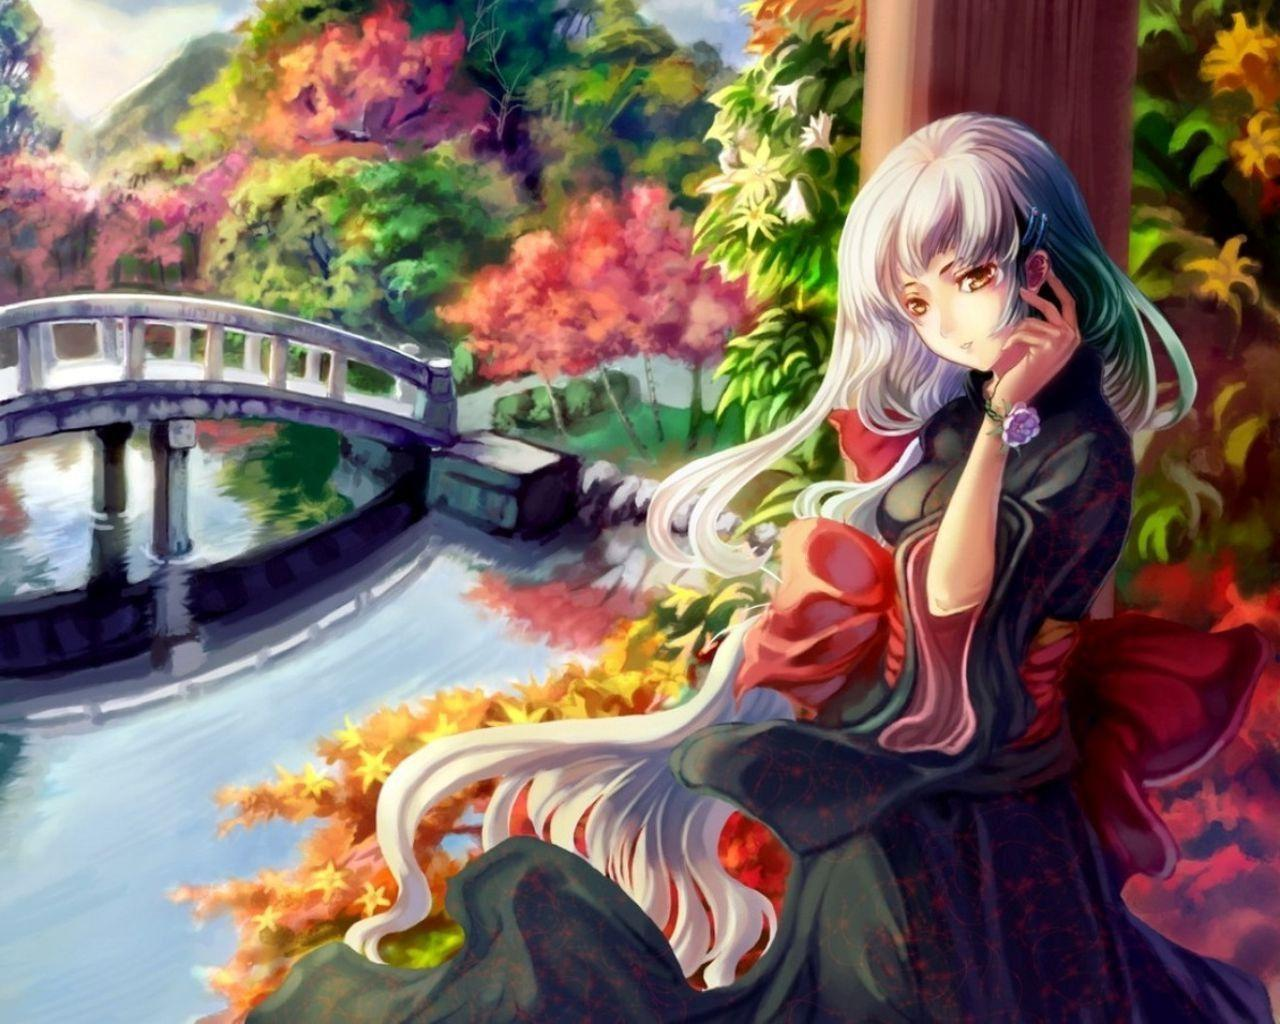 Kimono Anime Girl Android Wallpaper Beautiful Anime Wallpapers Wallpaper Cave